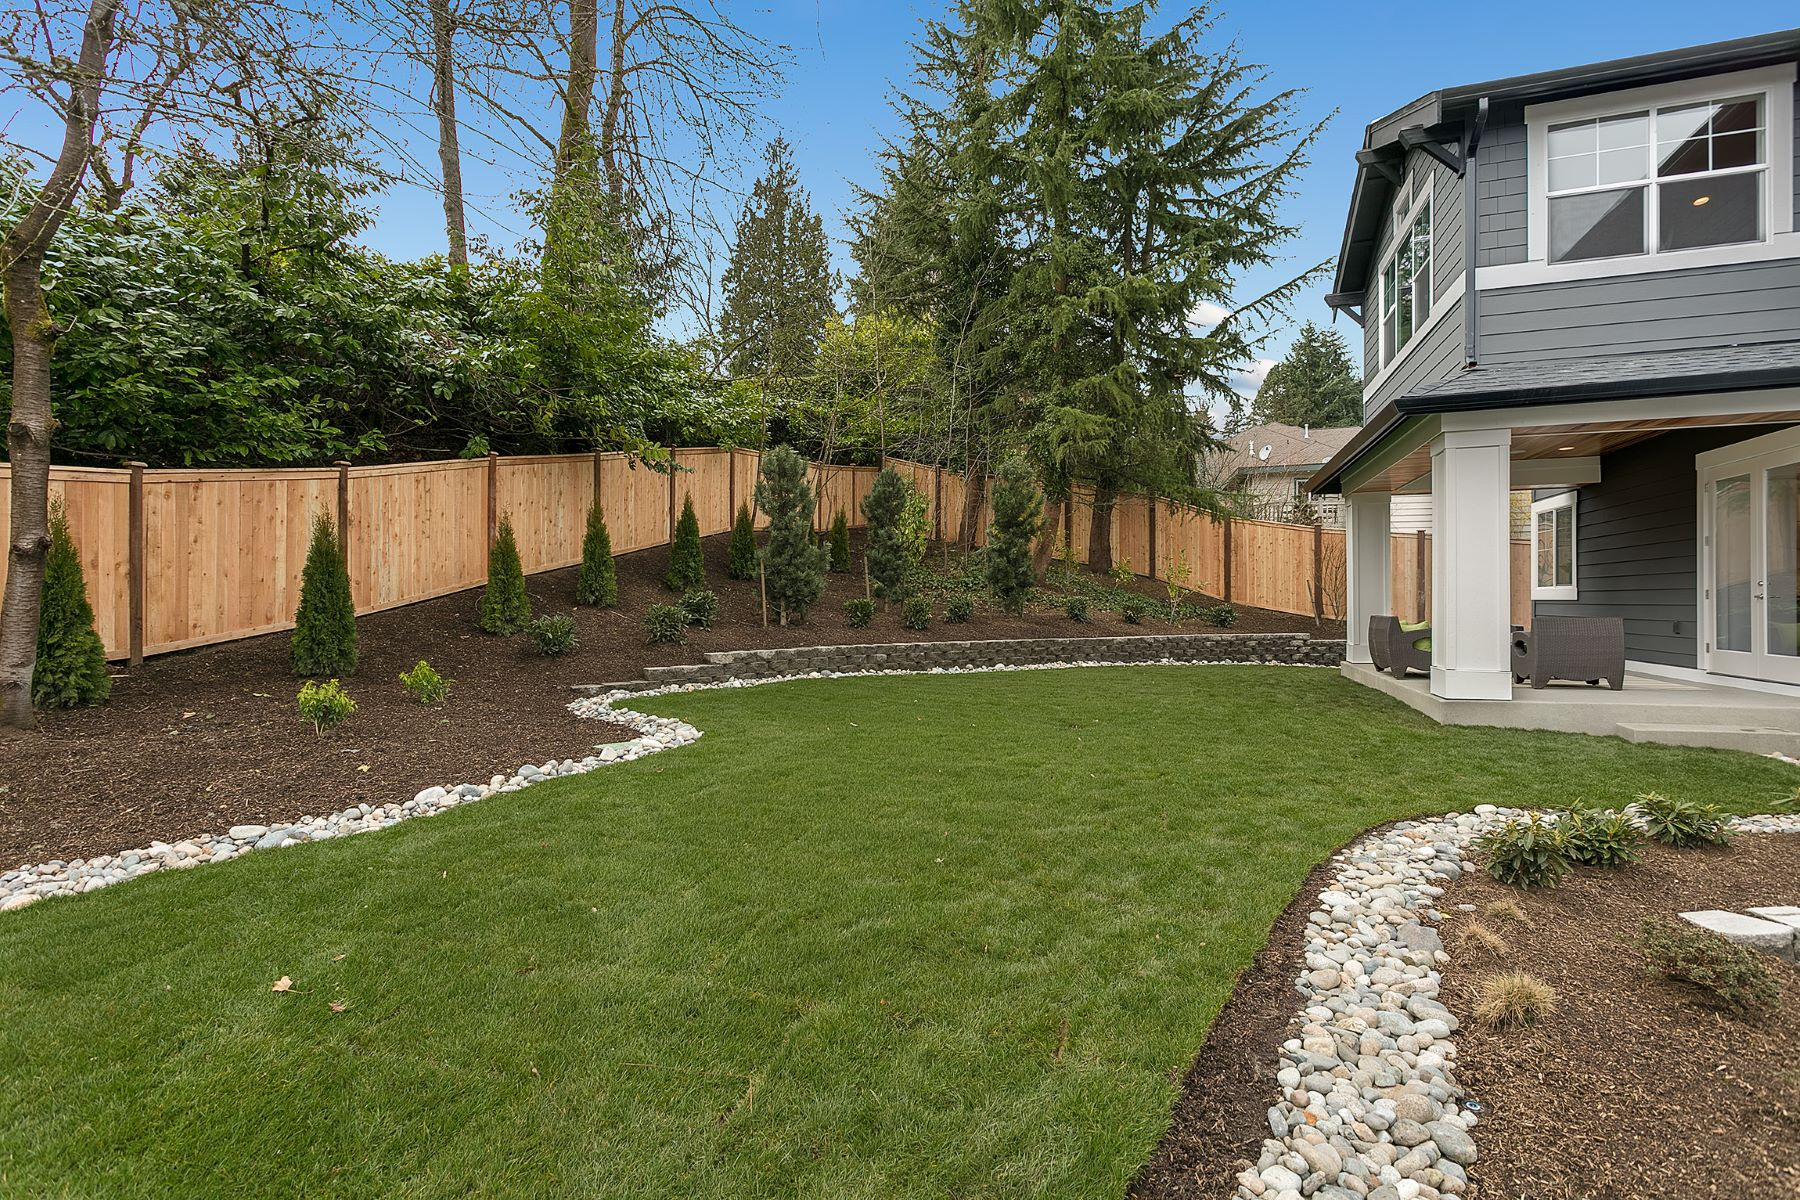 Additional photo for property listing at The Florence by JayMarc Homes 10219 NE 30th Place Bellevue, Washington 98004 Estados Unidos